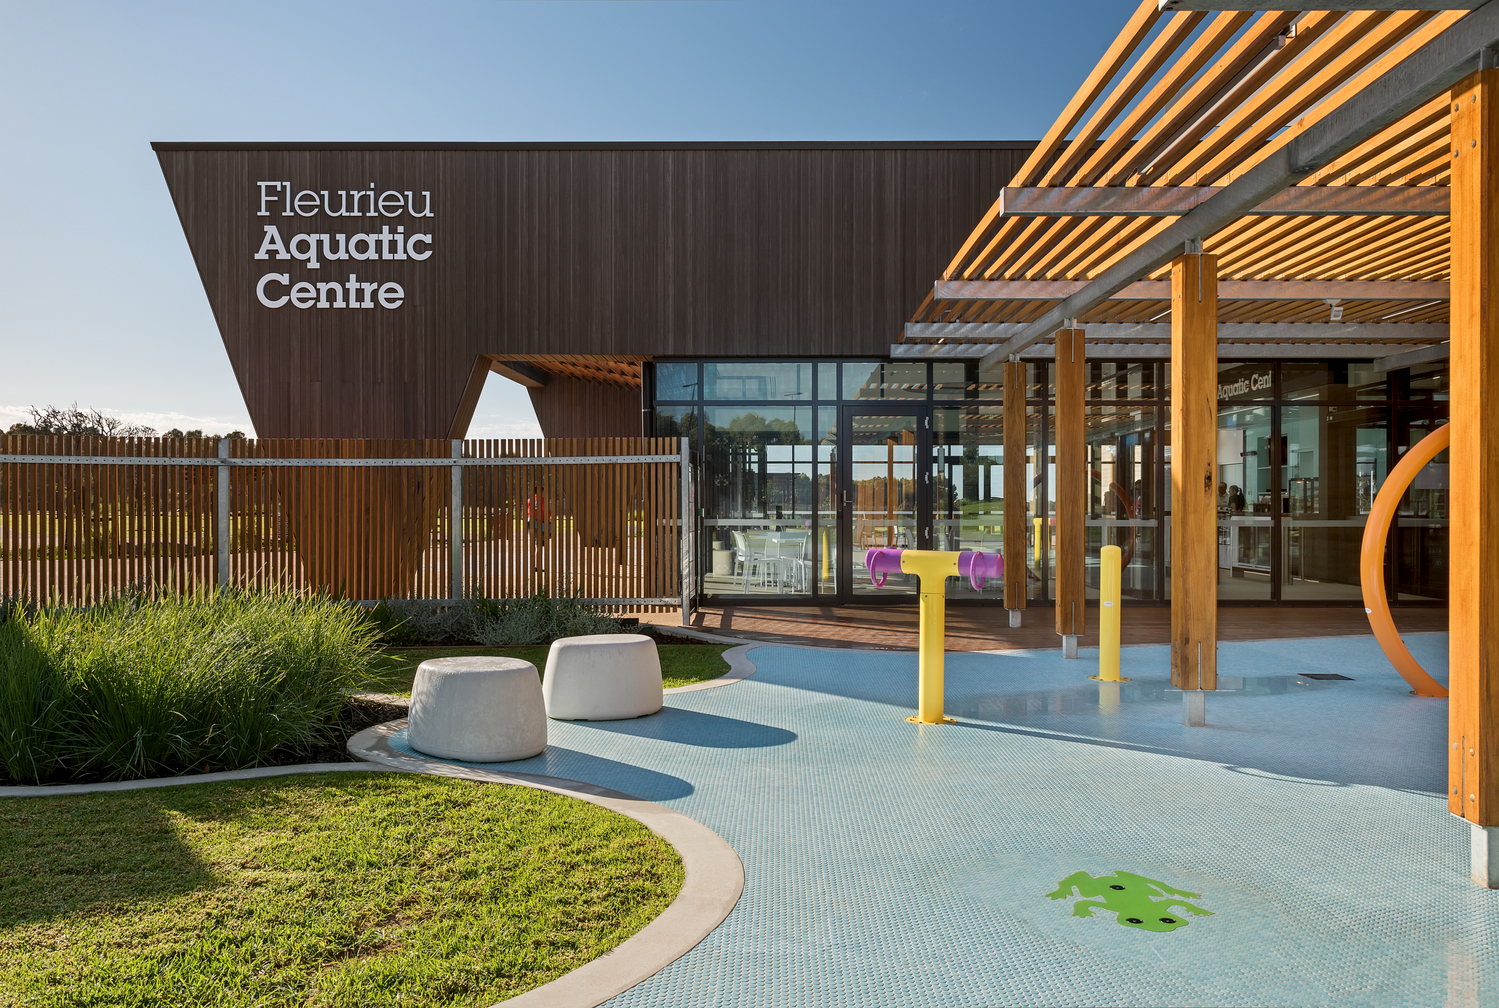 Fleurieu Aquatic Centre